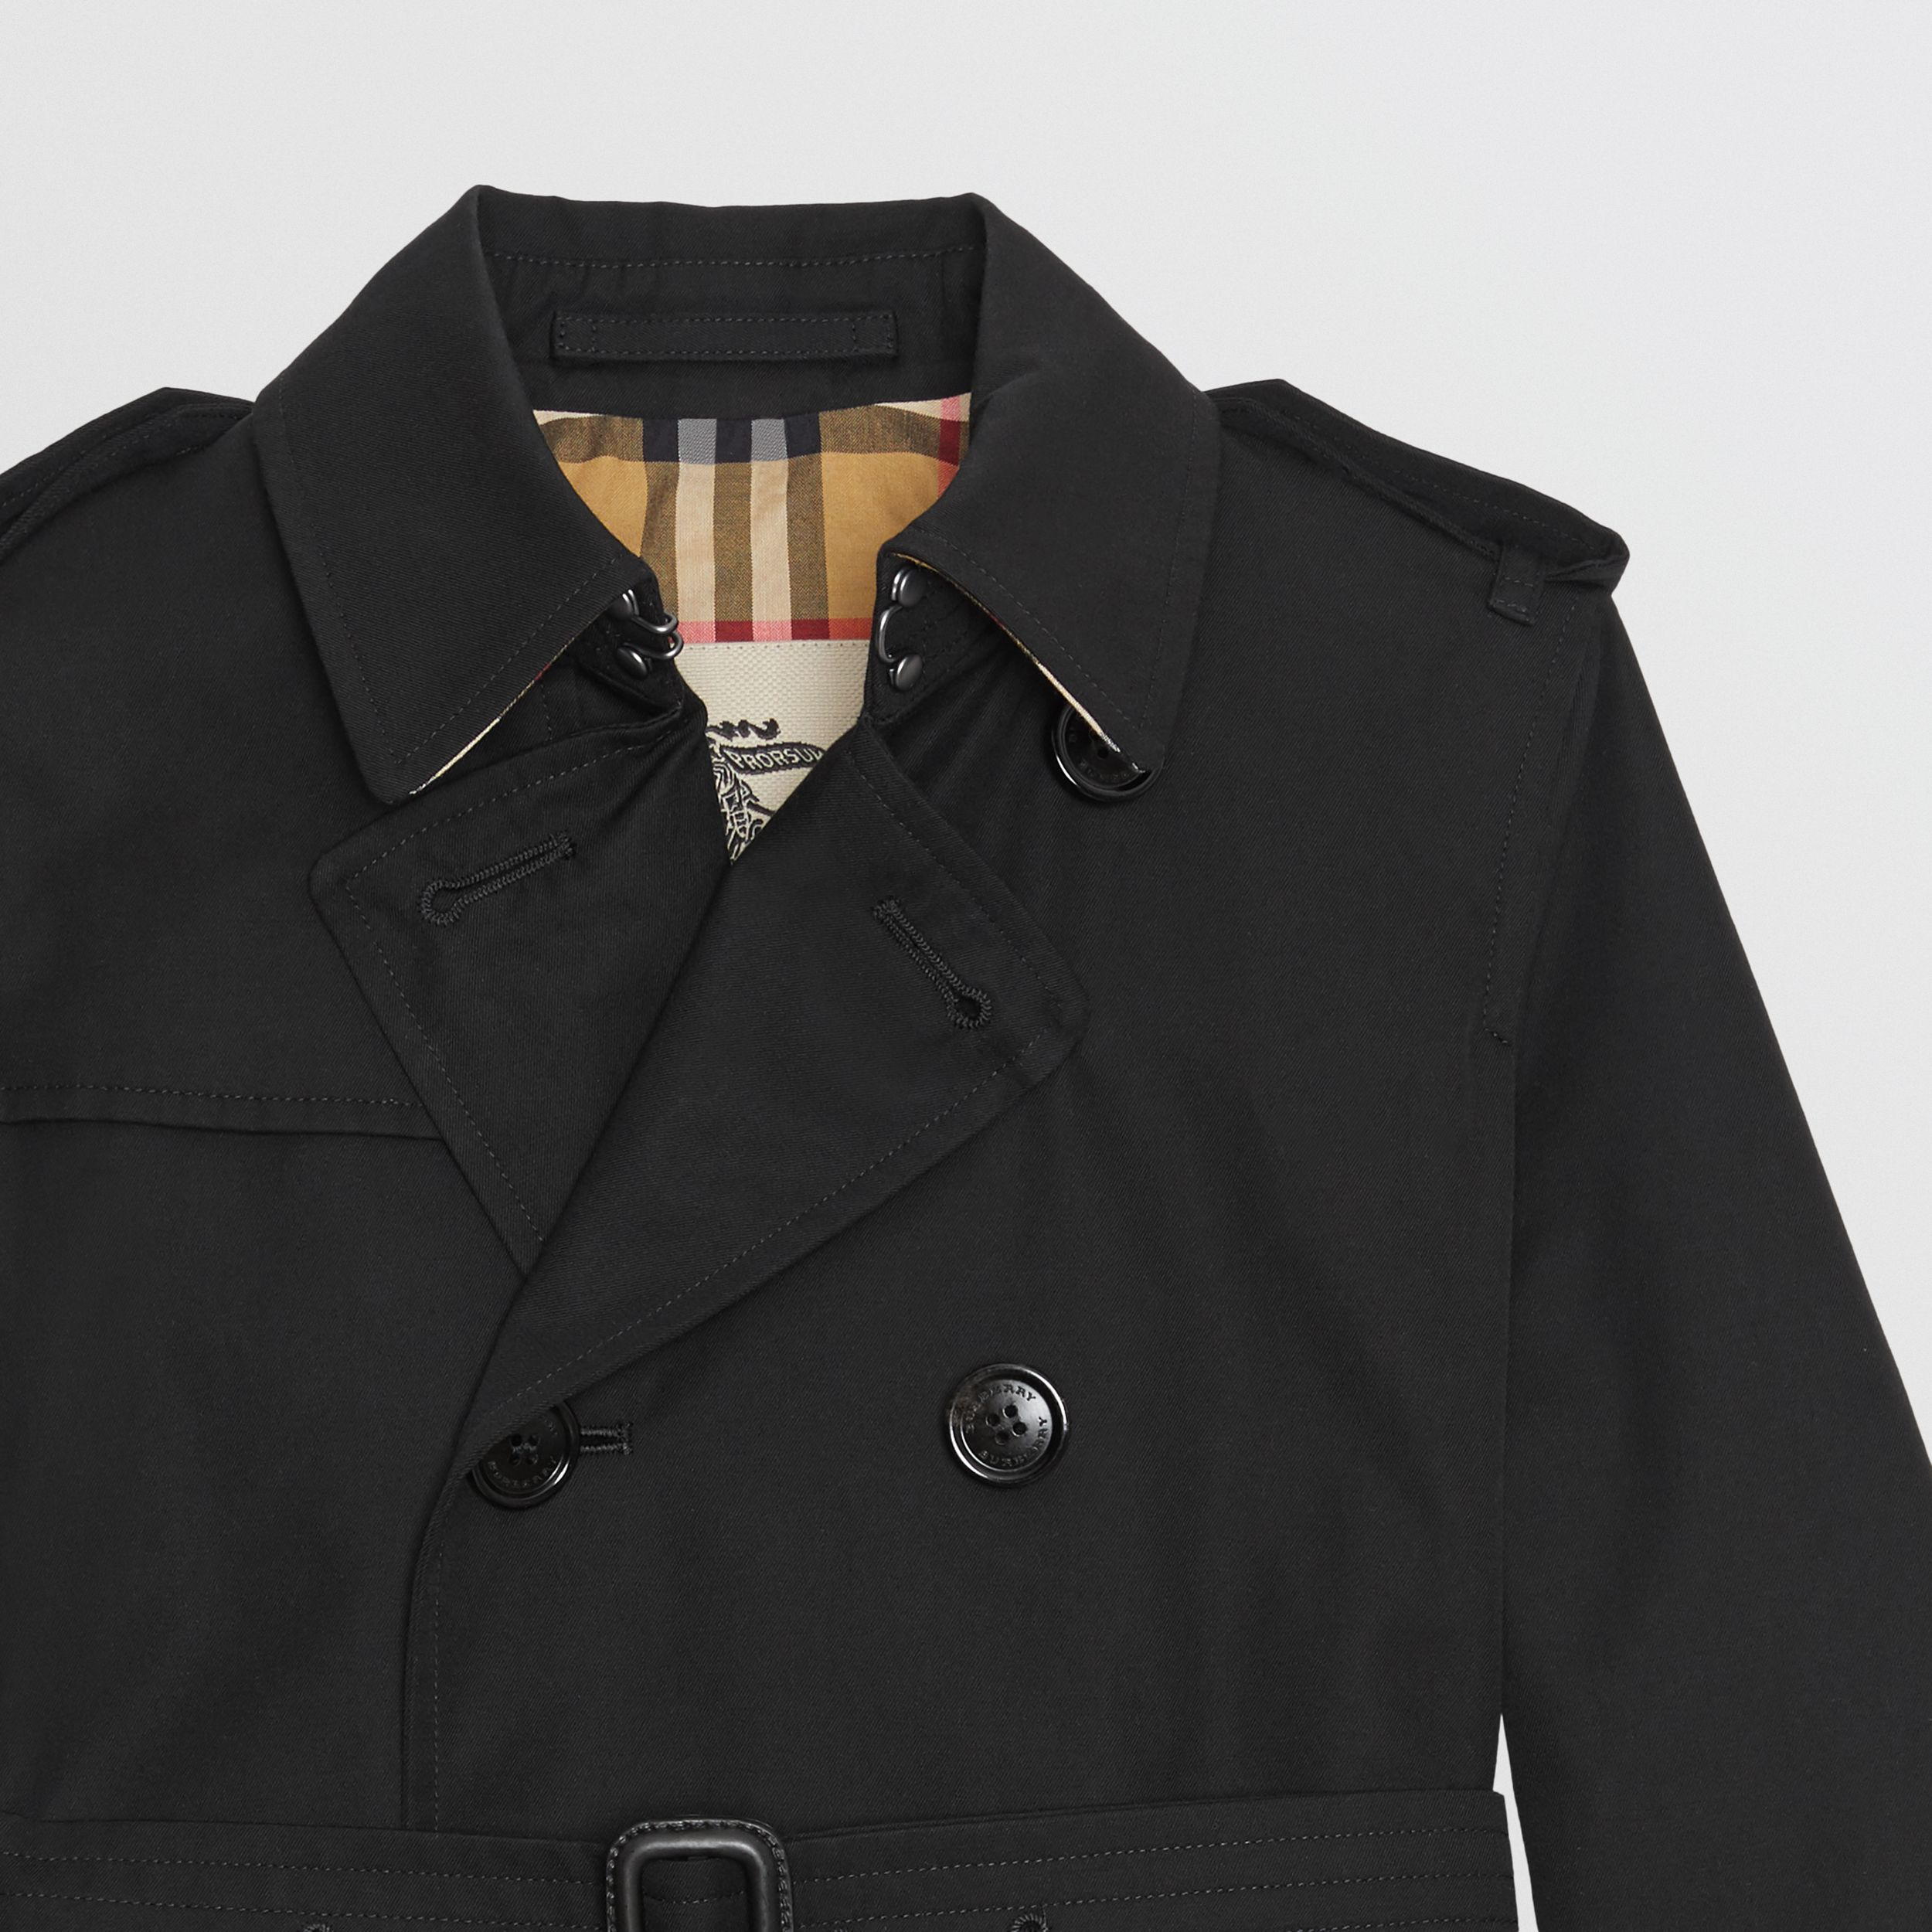 Cotton Gabardine Trench Coat in Black | Burberry - 4